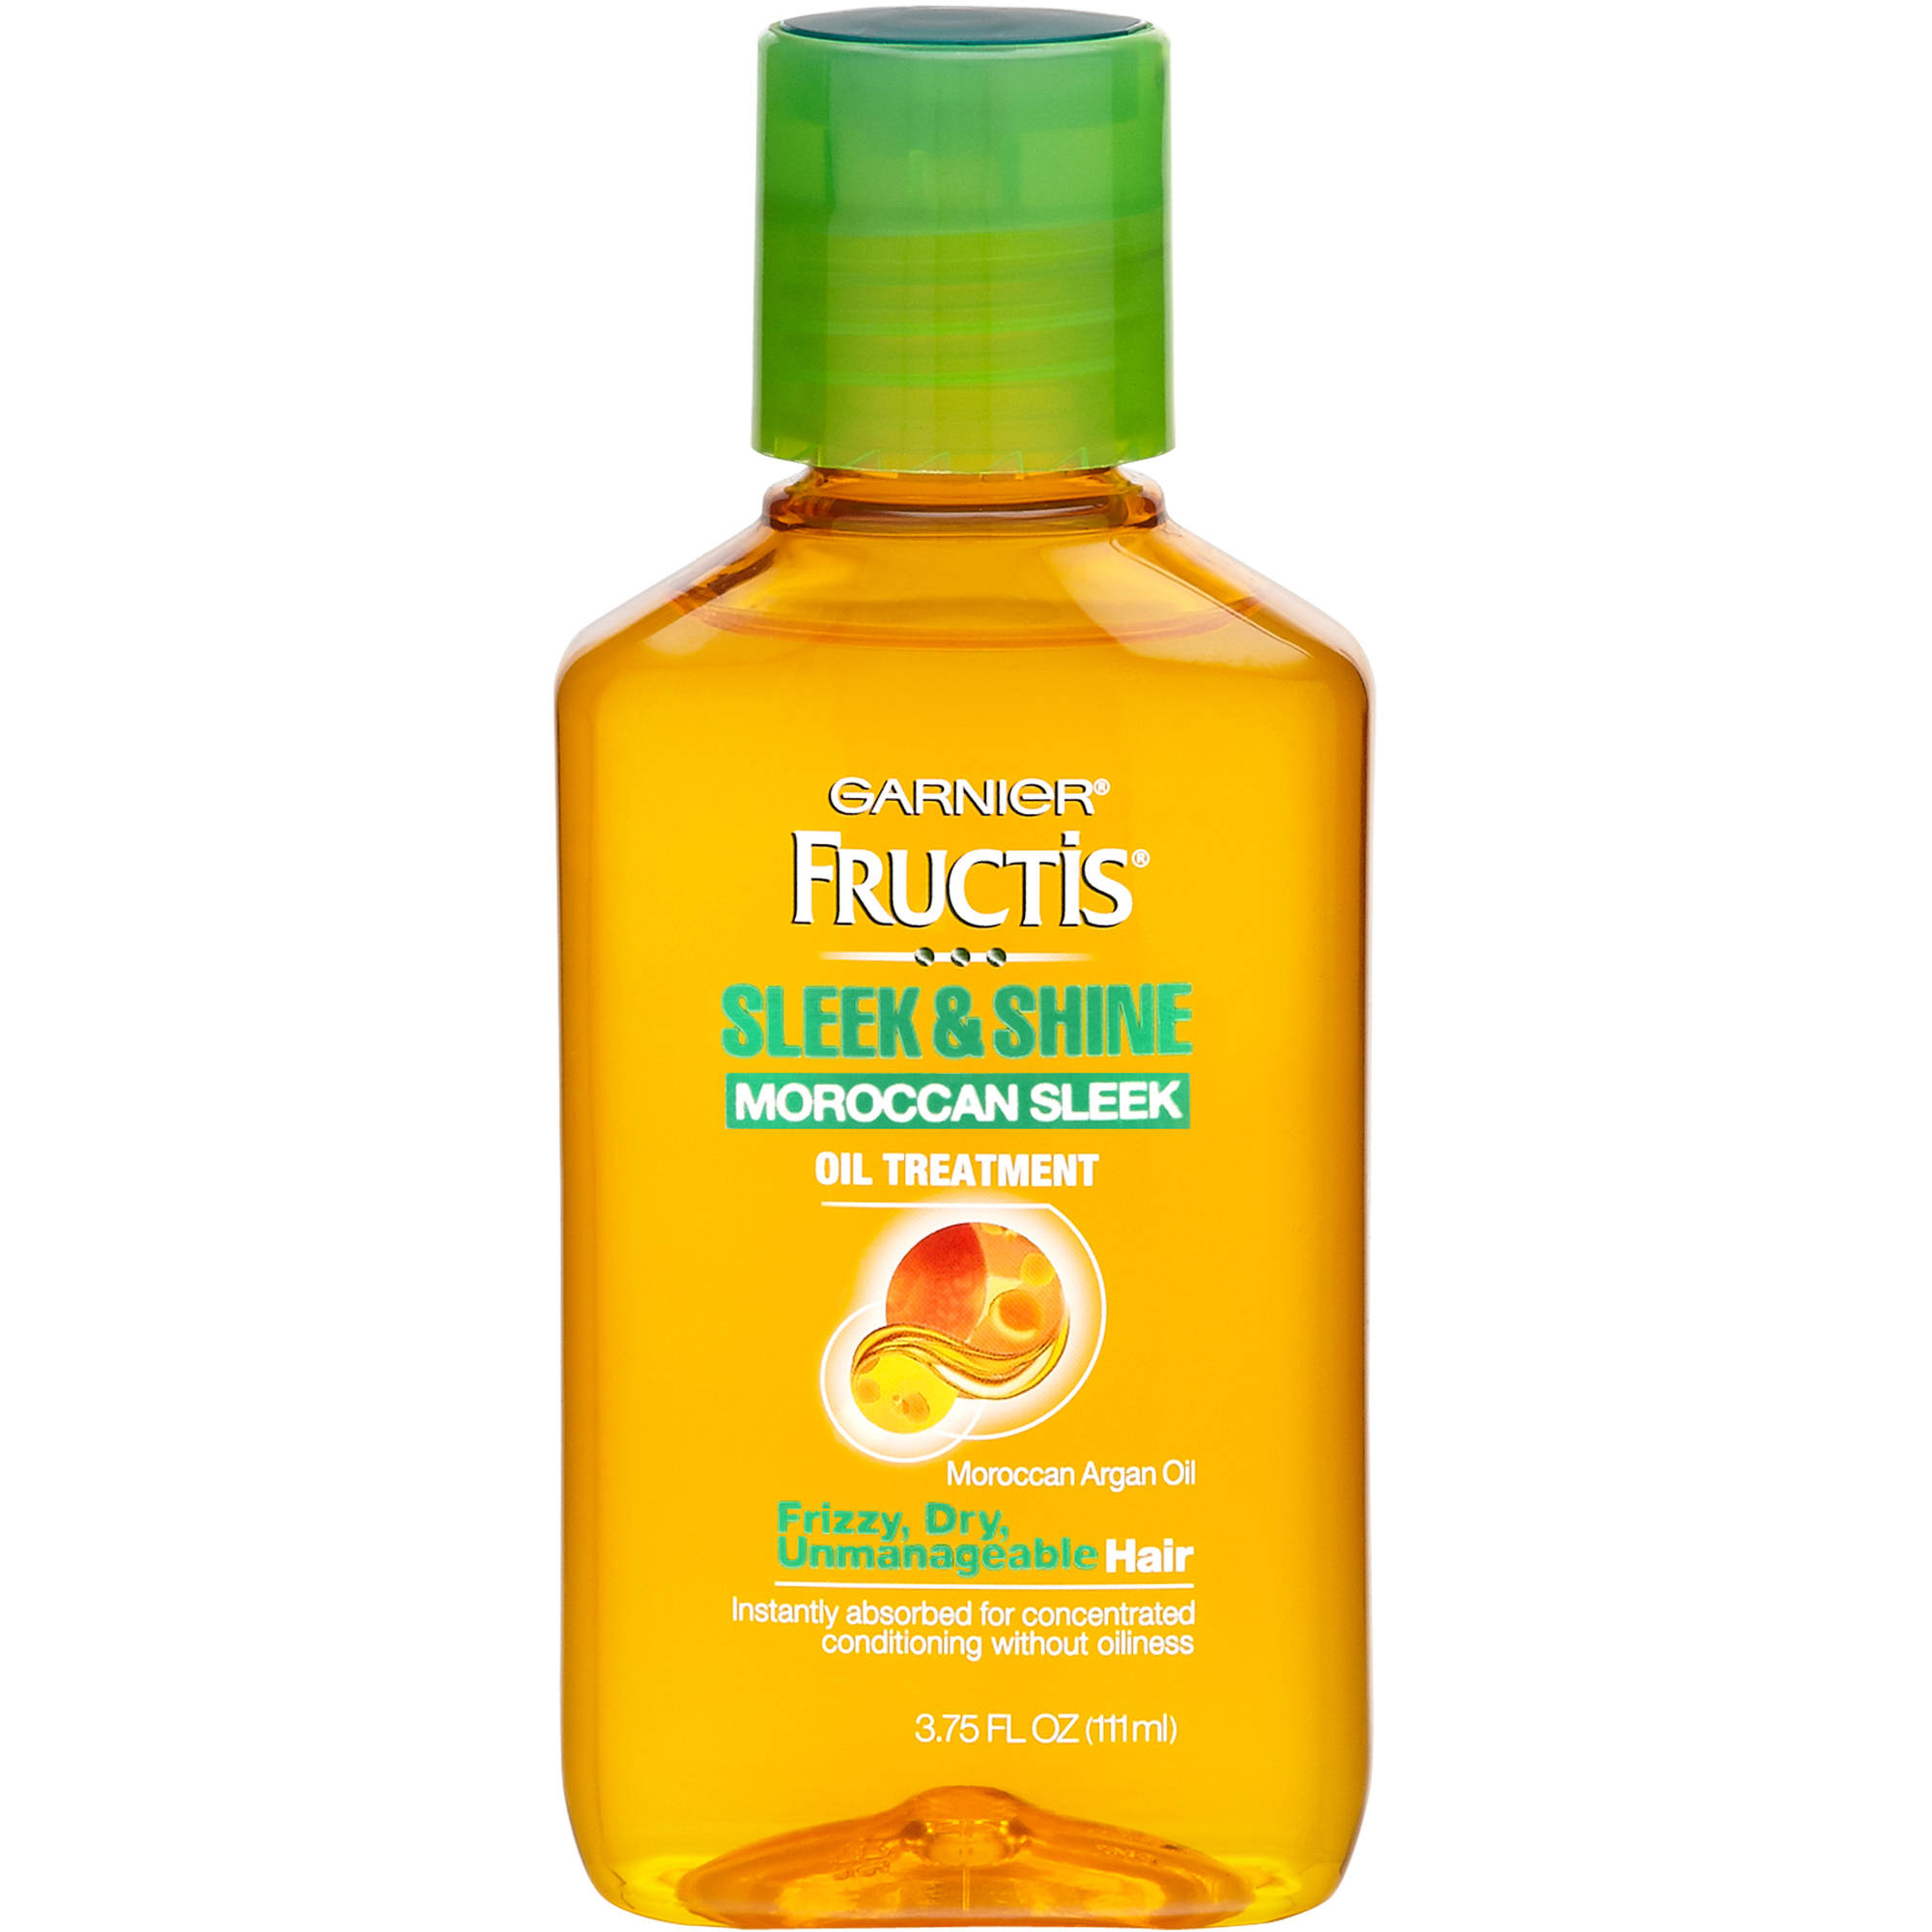 Garnier Fructis Sleek & Shine Moroccan Oil Treatment, 3.75 oz